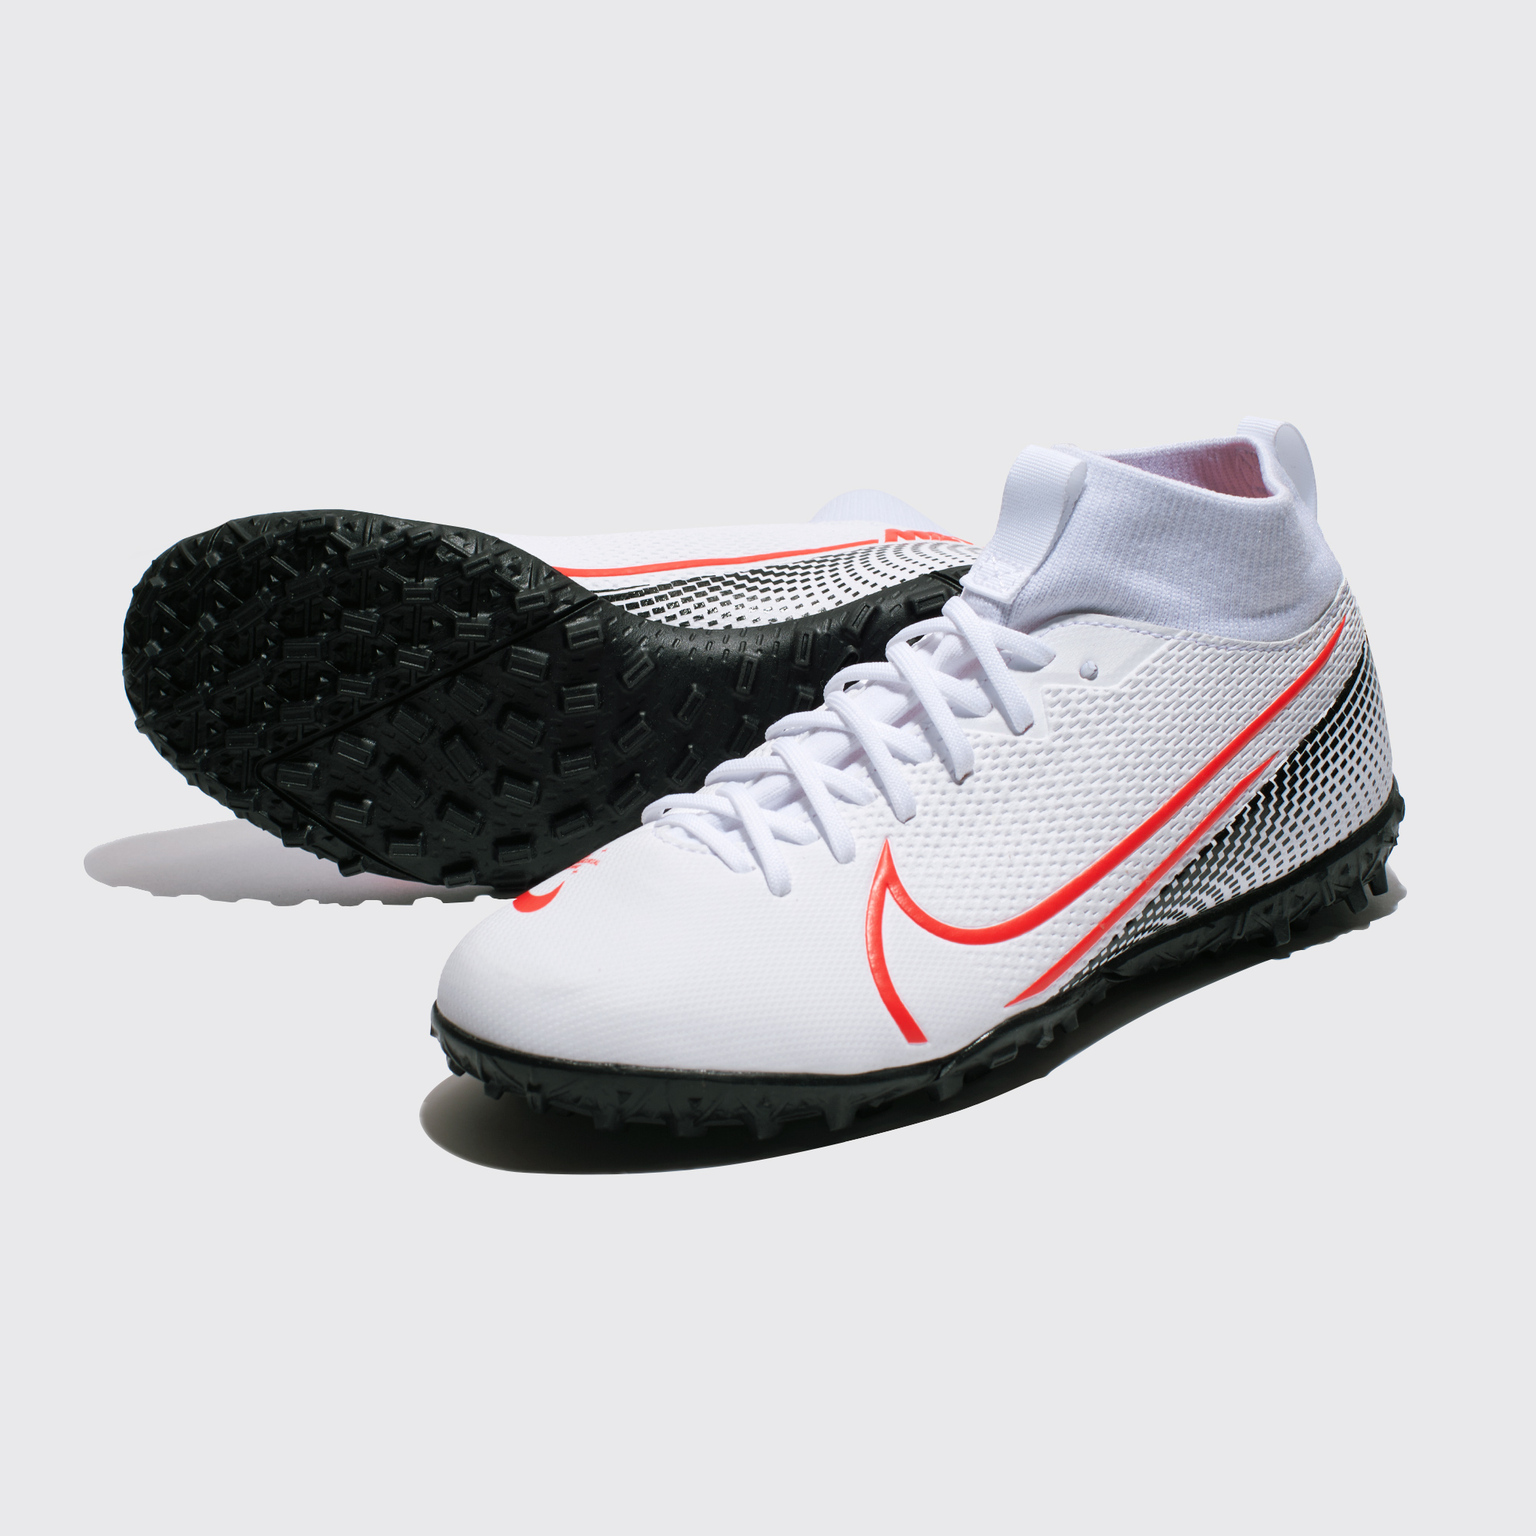 Шиповки детские Nike Superfly 7 Academy TF AT8143-160